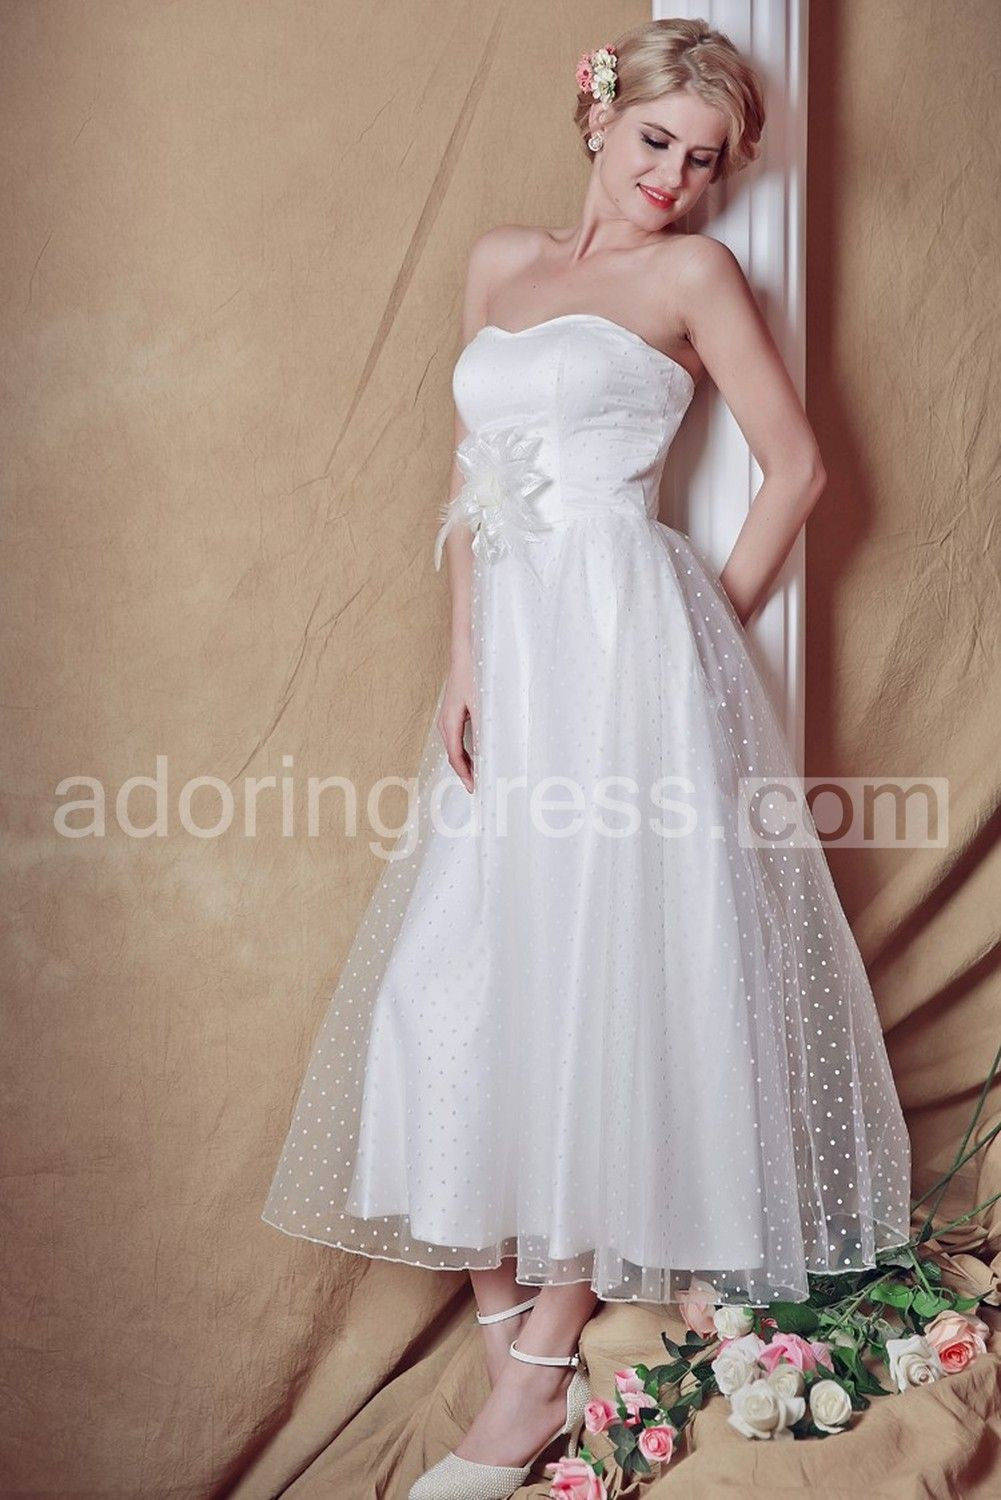 Exquisite strapless tealength country wedding dress weddings